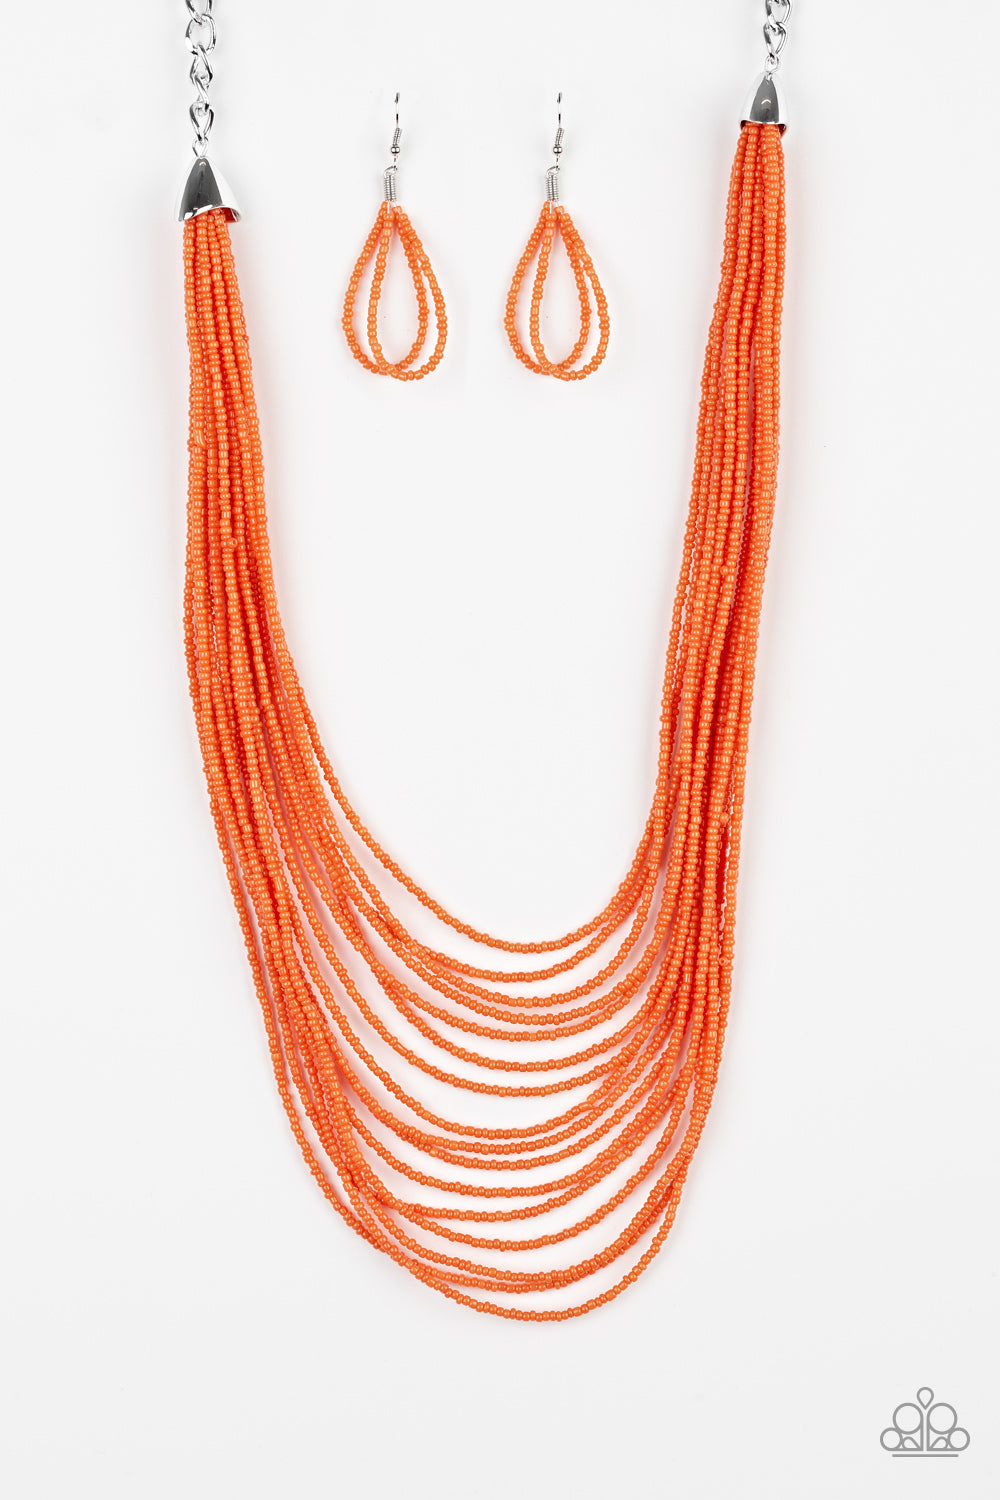 Paparazzi Accessories - Peacefully Pacific - Orange Necklace Set - JMJ Jewelry Collection